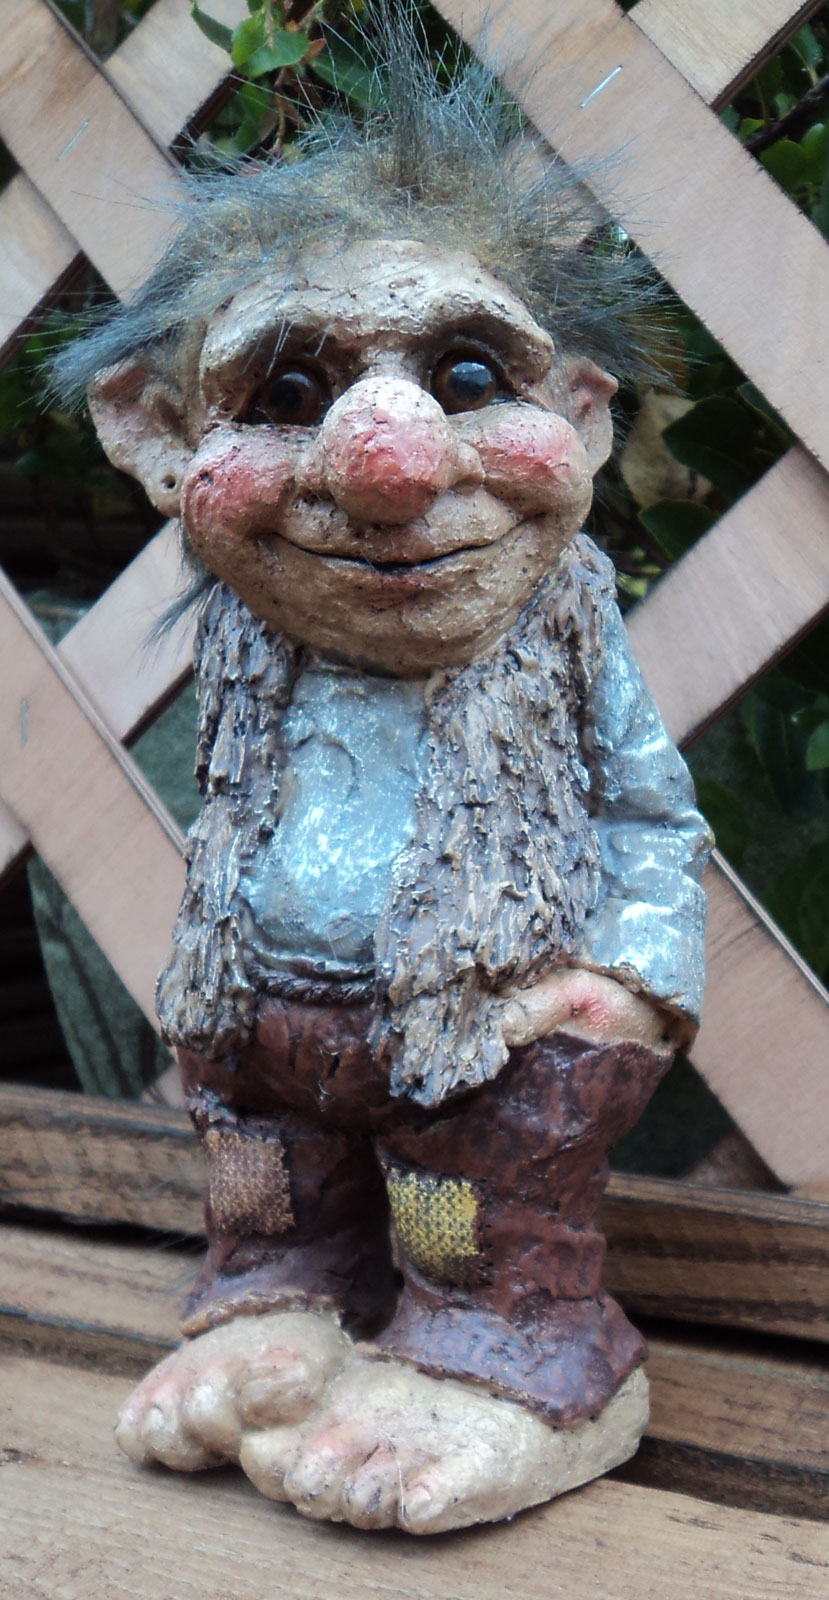 fun novelty viking dam ugly troll gnome gift ornament